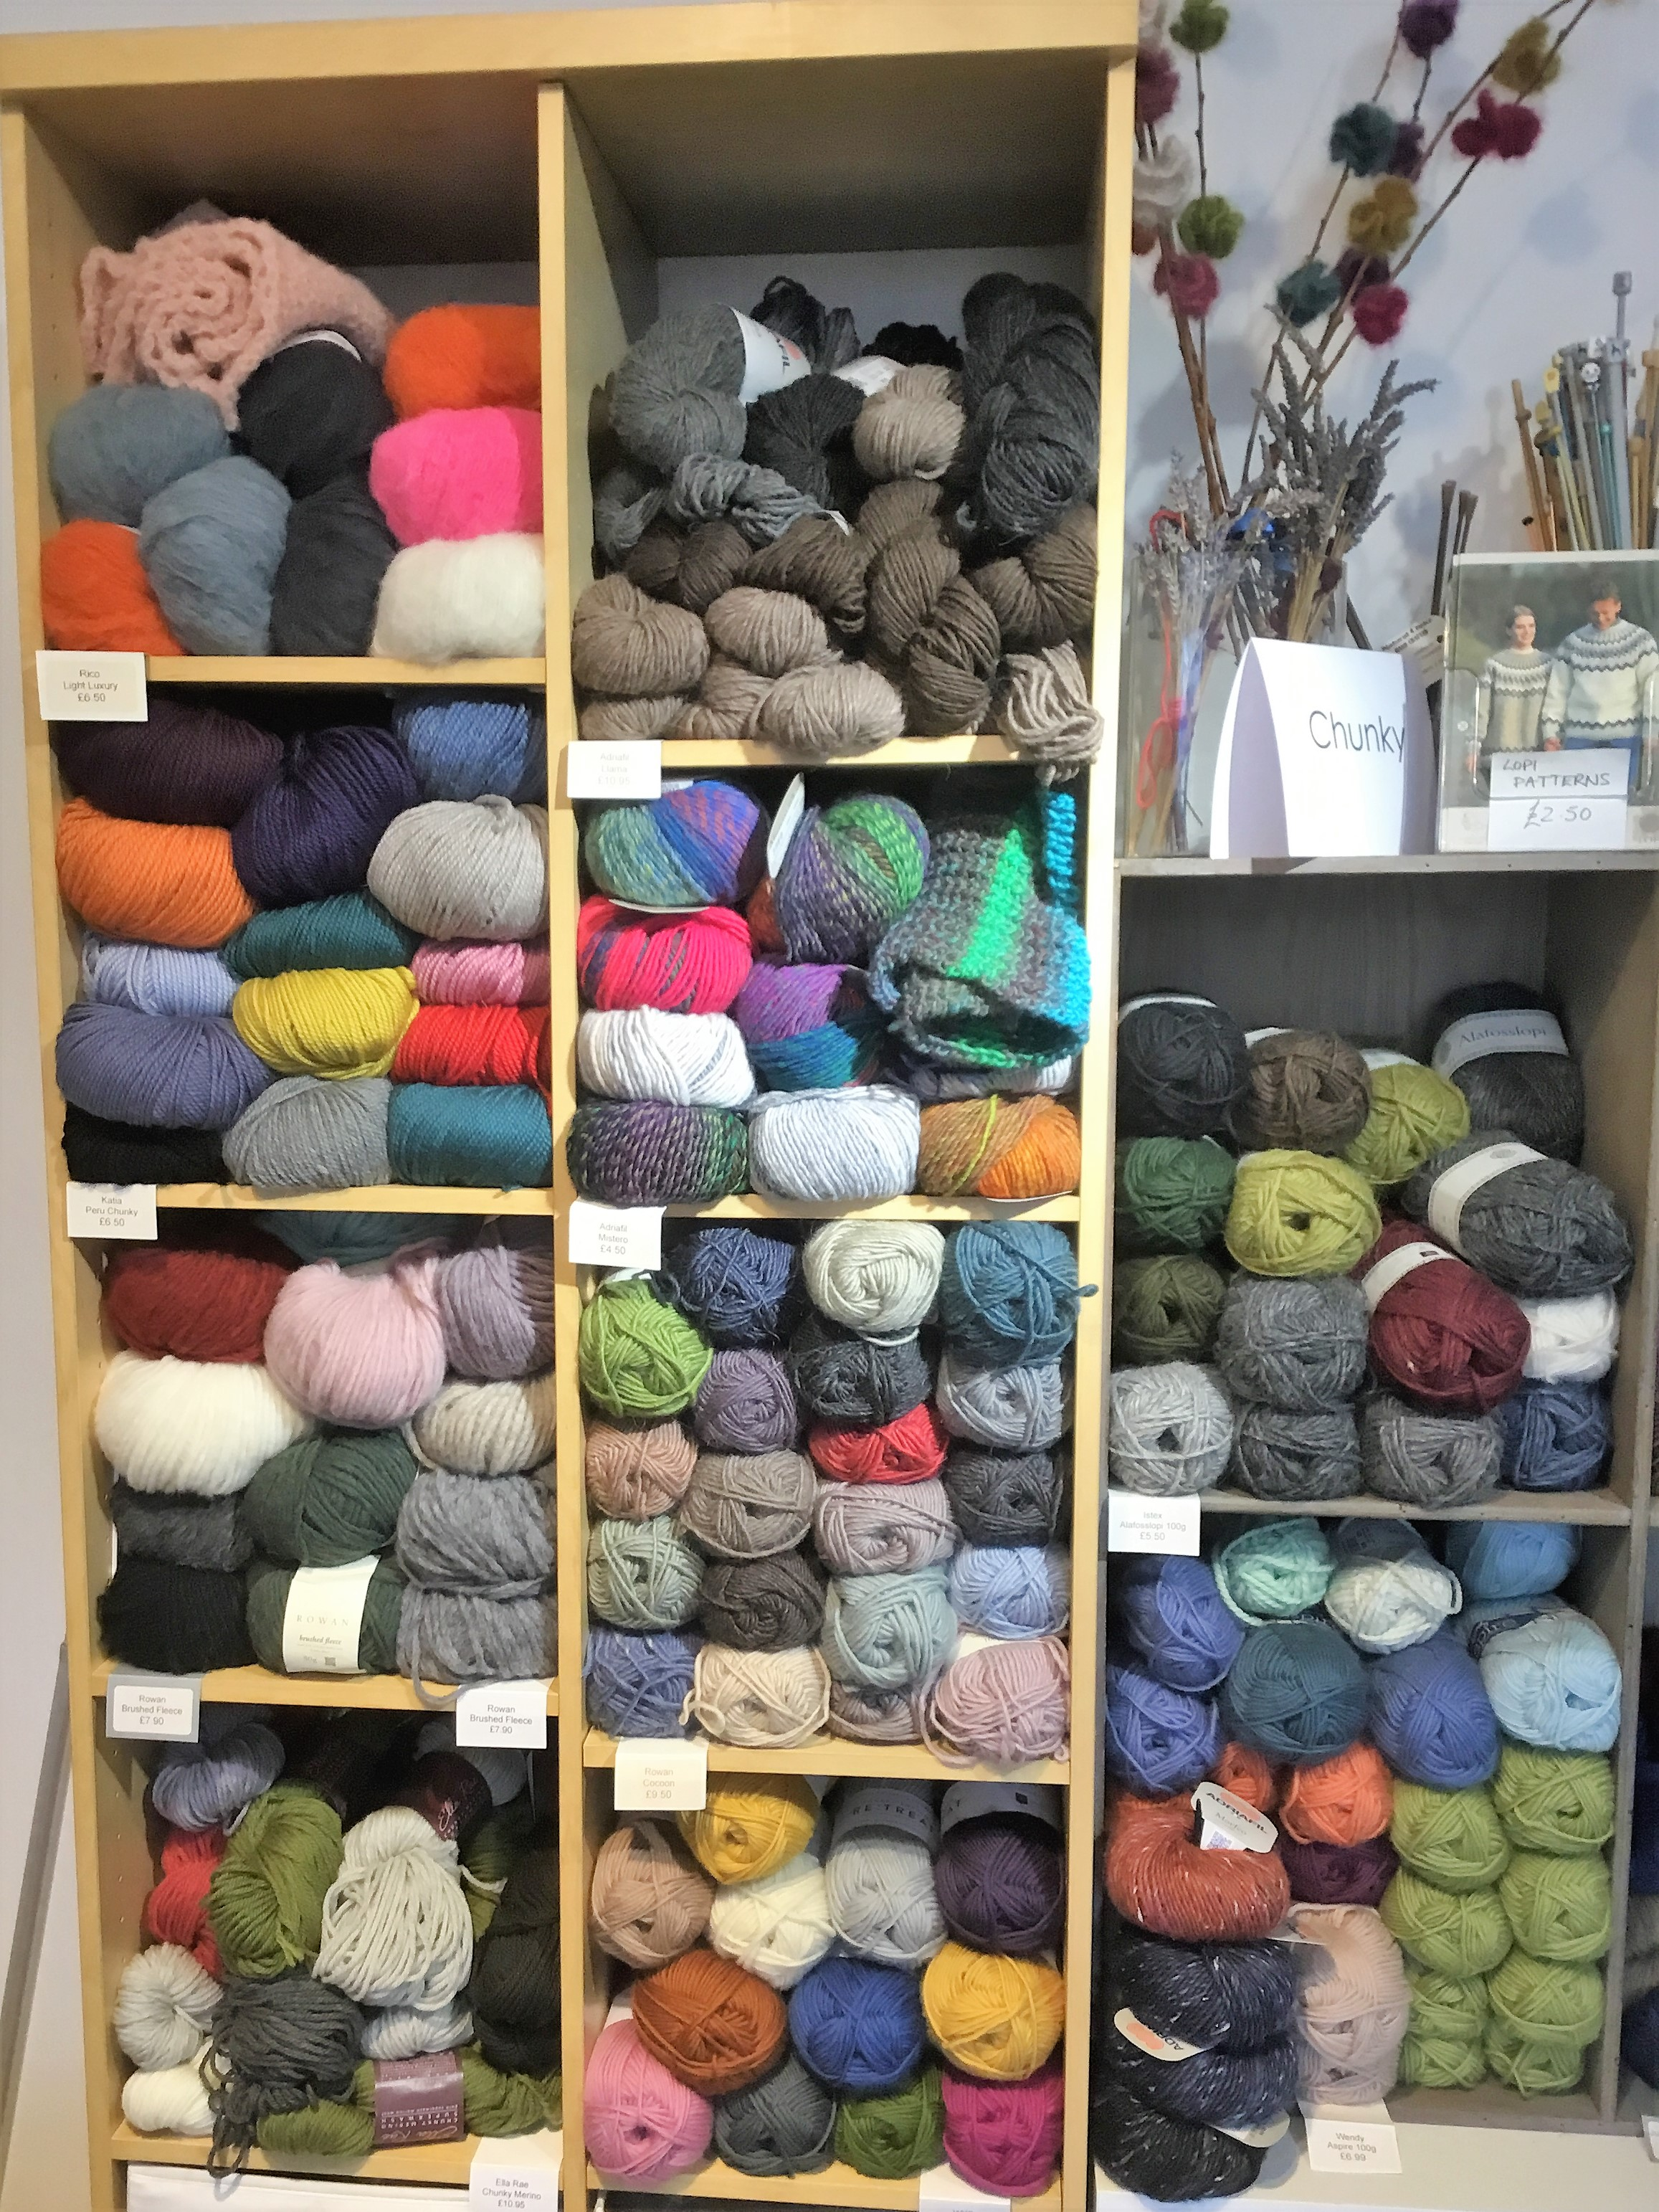 A kaleidoscope of wool yarn colors at the neighborhood yarn shop in Herne Hill.